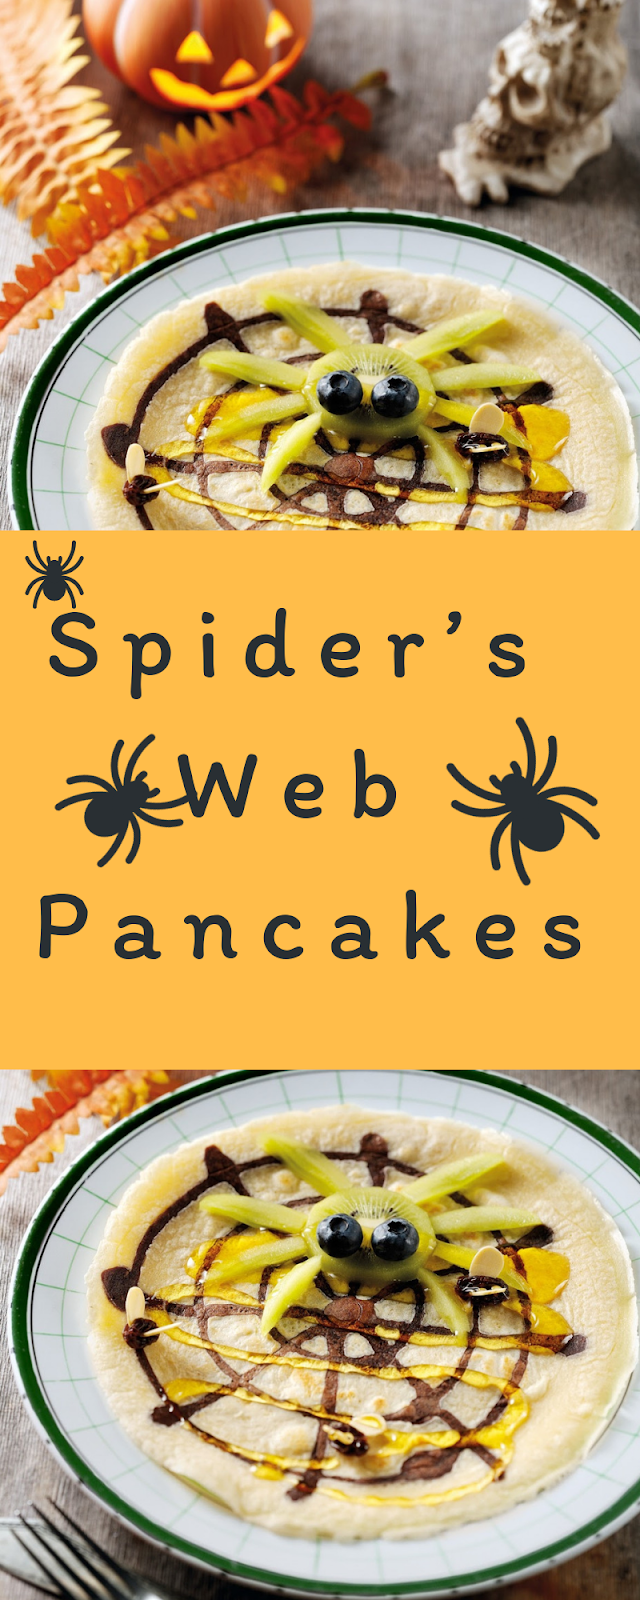 Spider's Web Pancakes